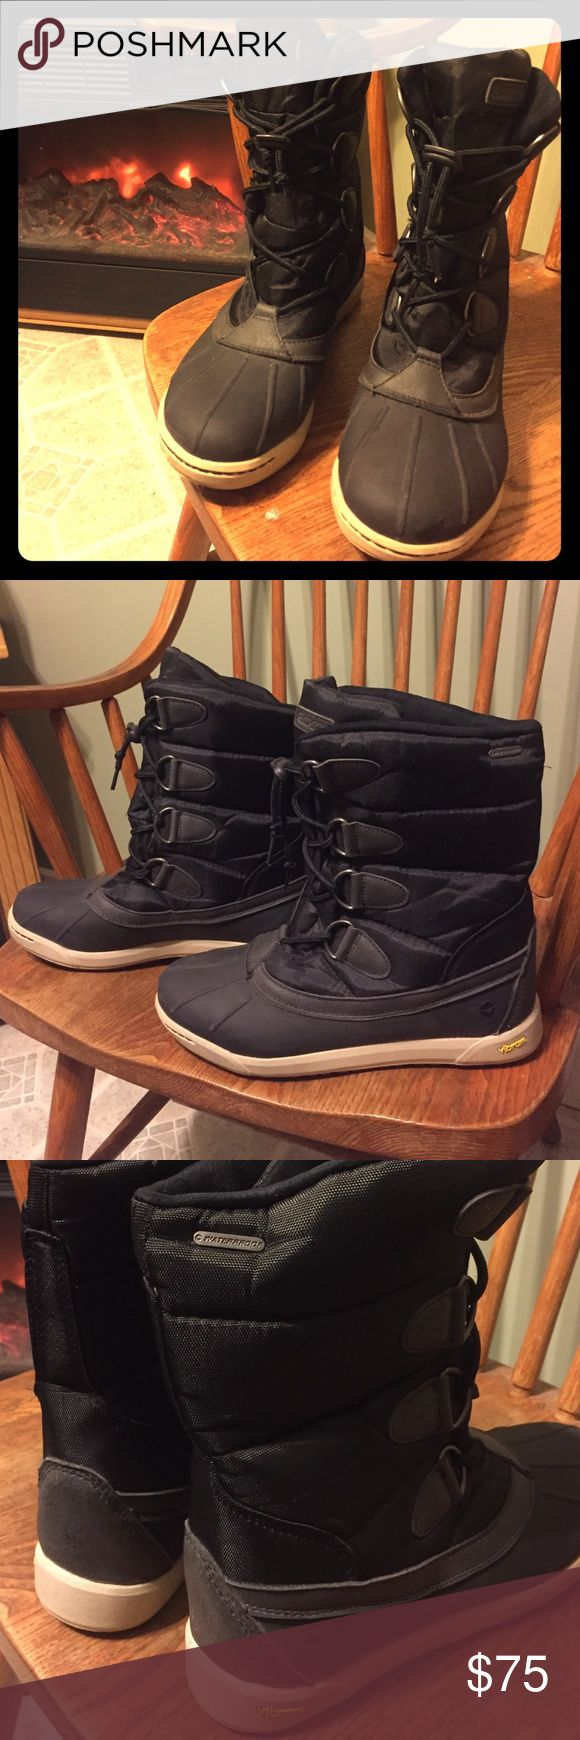 Hi Tec Boots 100% waterproof super soft interior These boots are awesome! So comfortable. Excellent condition. The inside is so soft and nice. Durable. Quality Brand . All black with tan soles drawstring laces. Hi-Tec Shoes Winter & Rain Boots